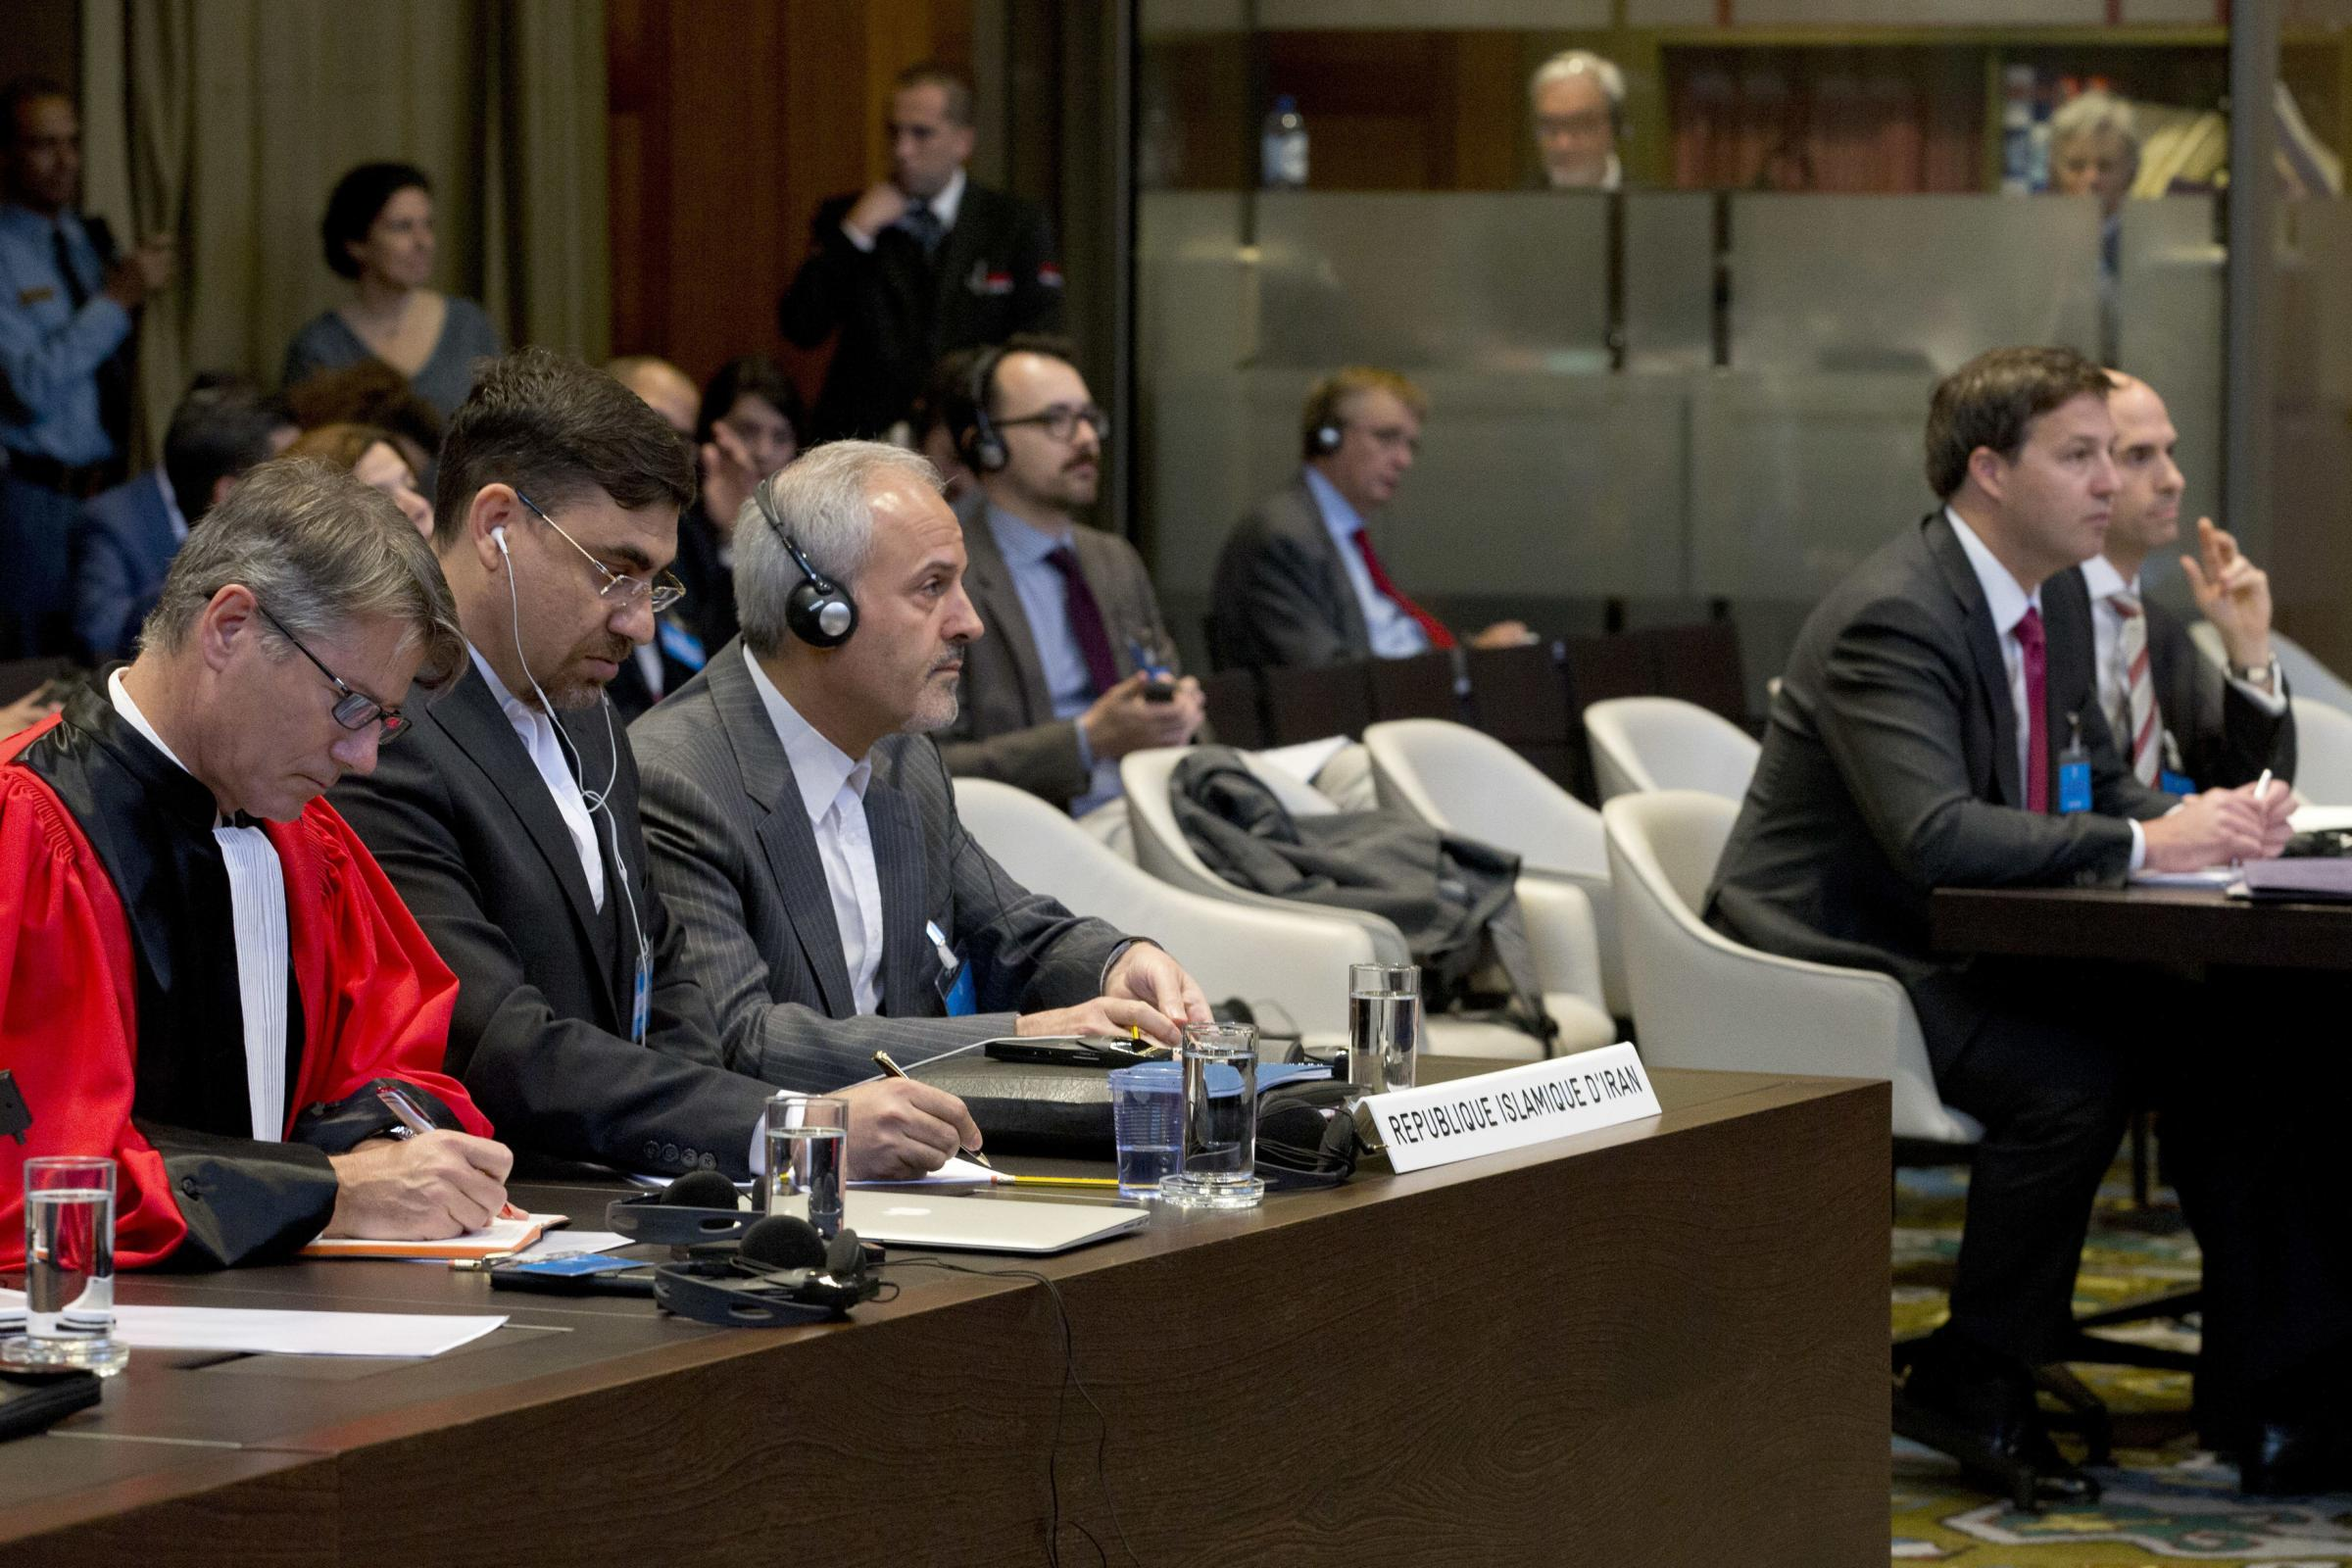 Mohammed Zahedin Labbaf, third left, agent for the Islamic Republic of Iran, and the U.S. delegation, right, heard the ruling